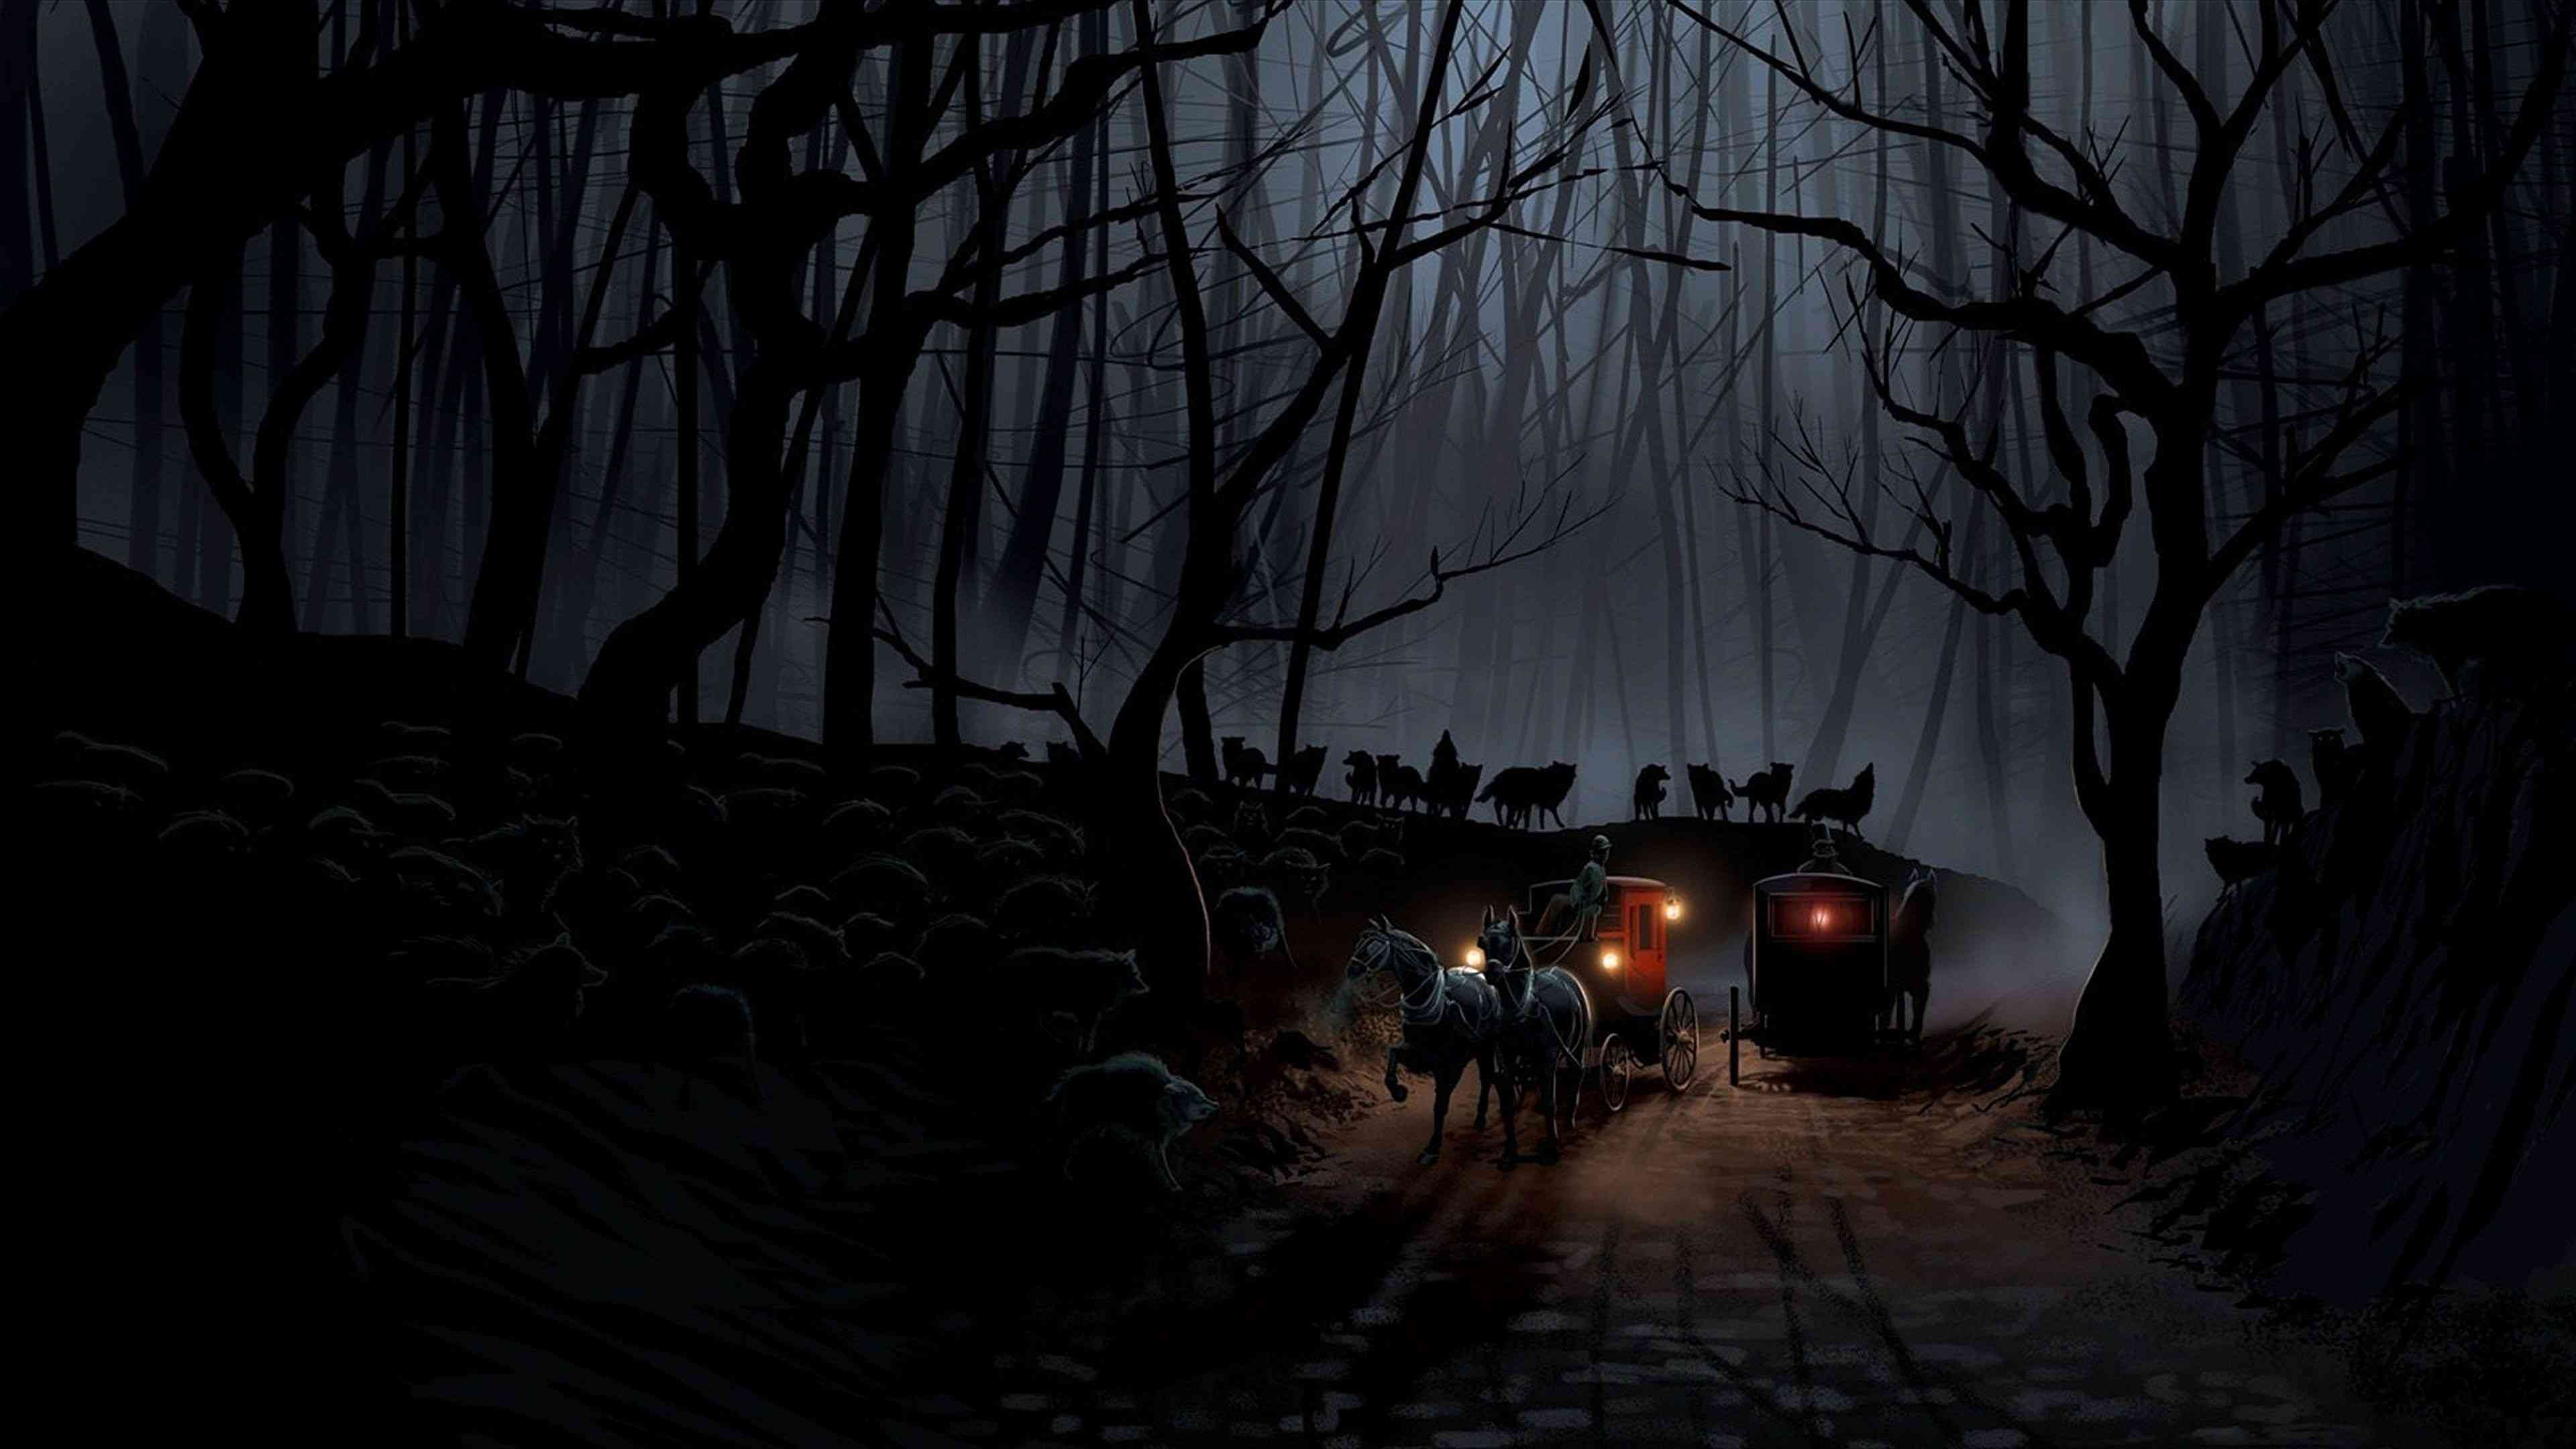 1.1 Svalich Woods, The Red Stage-Coach  910